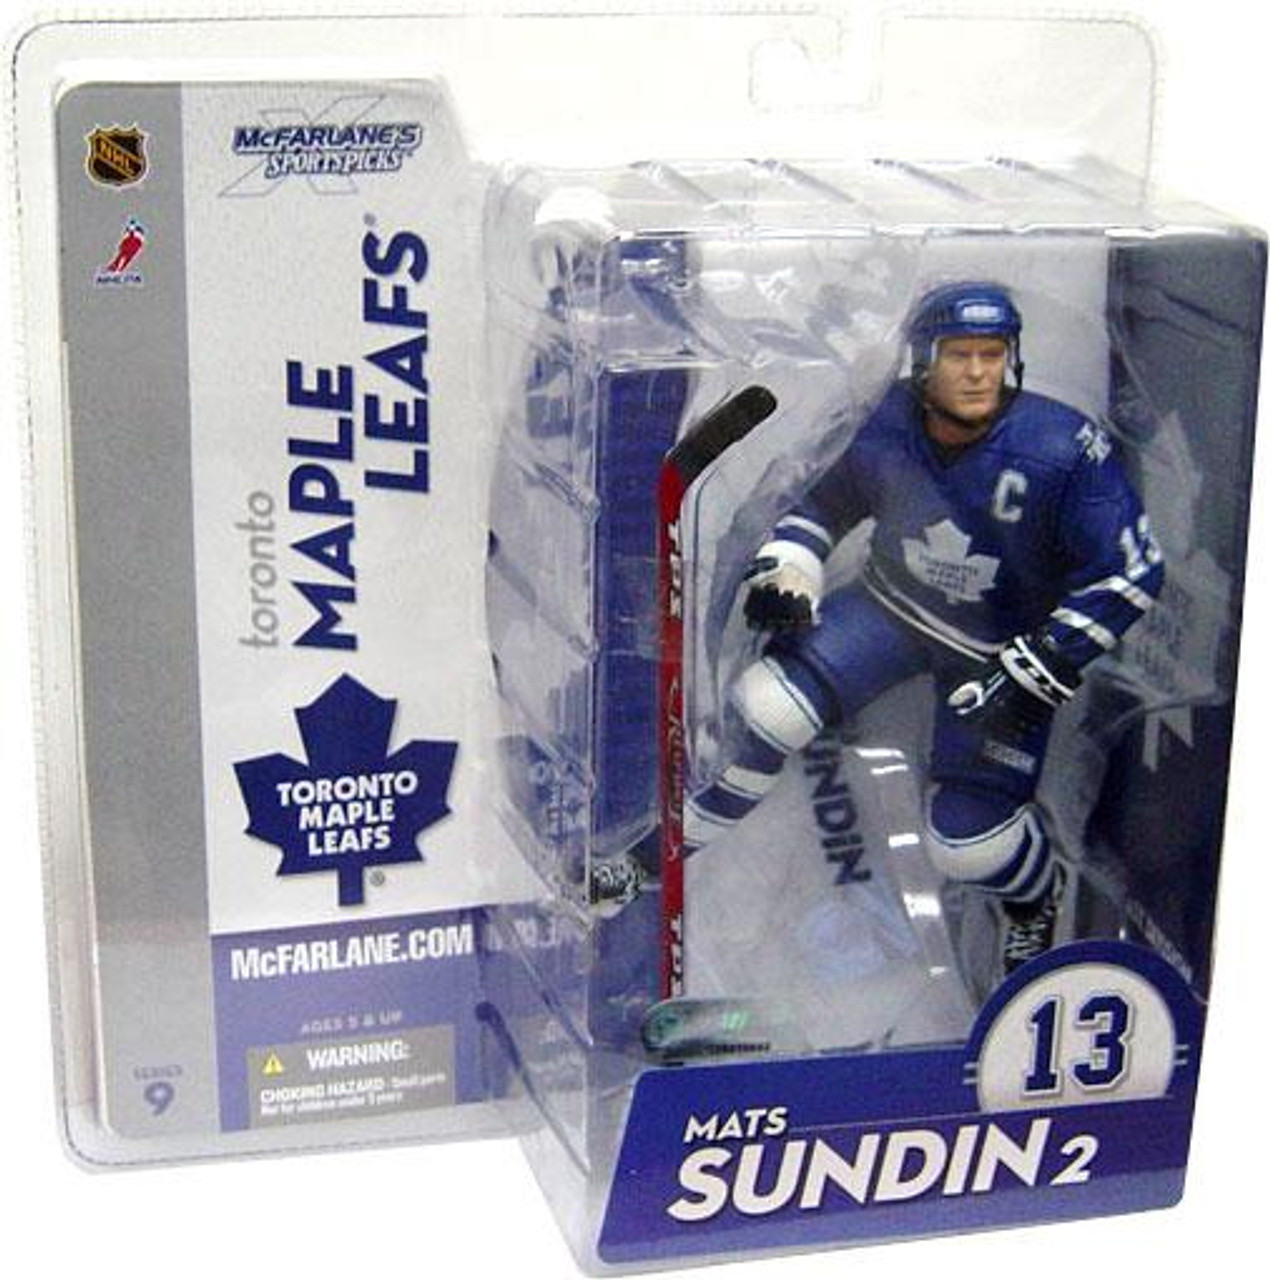 McFarlane Toys NHL Toronto Maple Leafs Sports Picks Series 9 Mats Sundin Action Figure [Blue Jersey Variant]